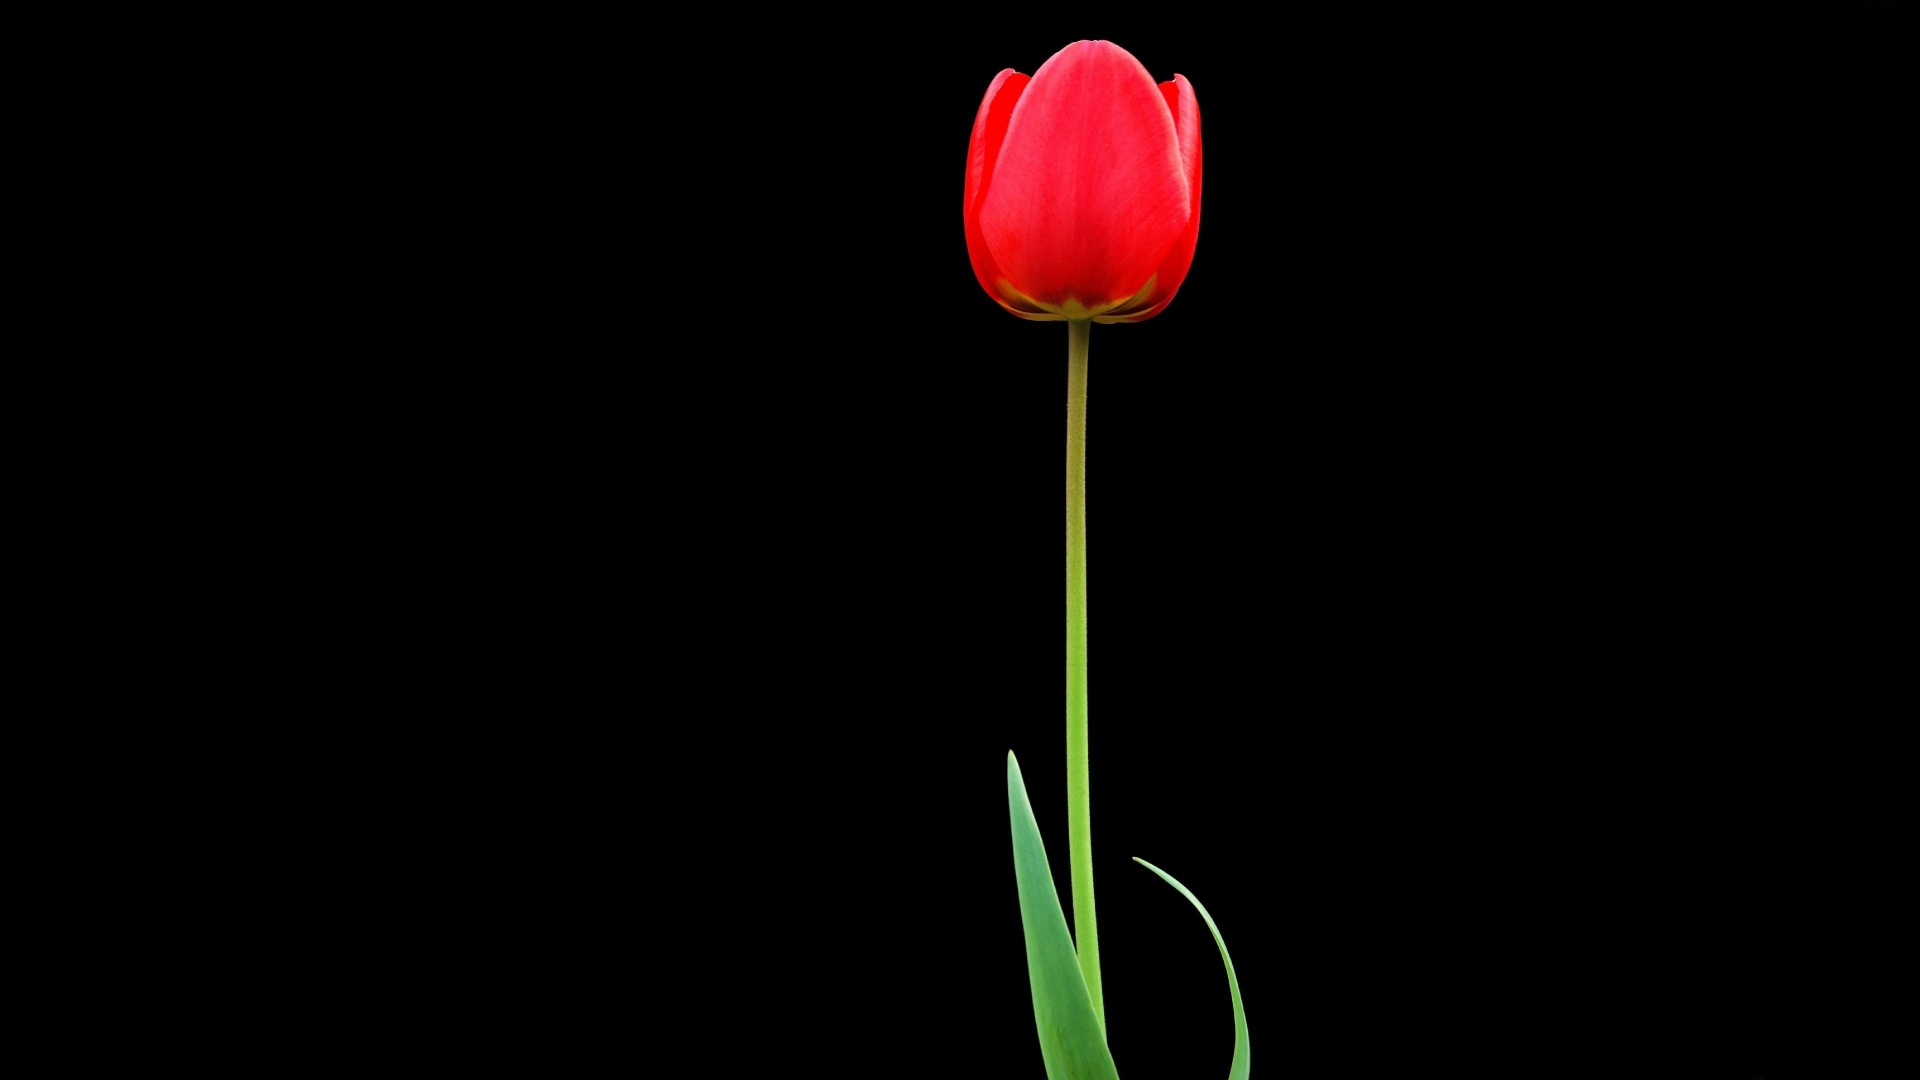 Download Wallpaper 1920x1080 Tulip Red Flower One Black